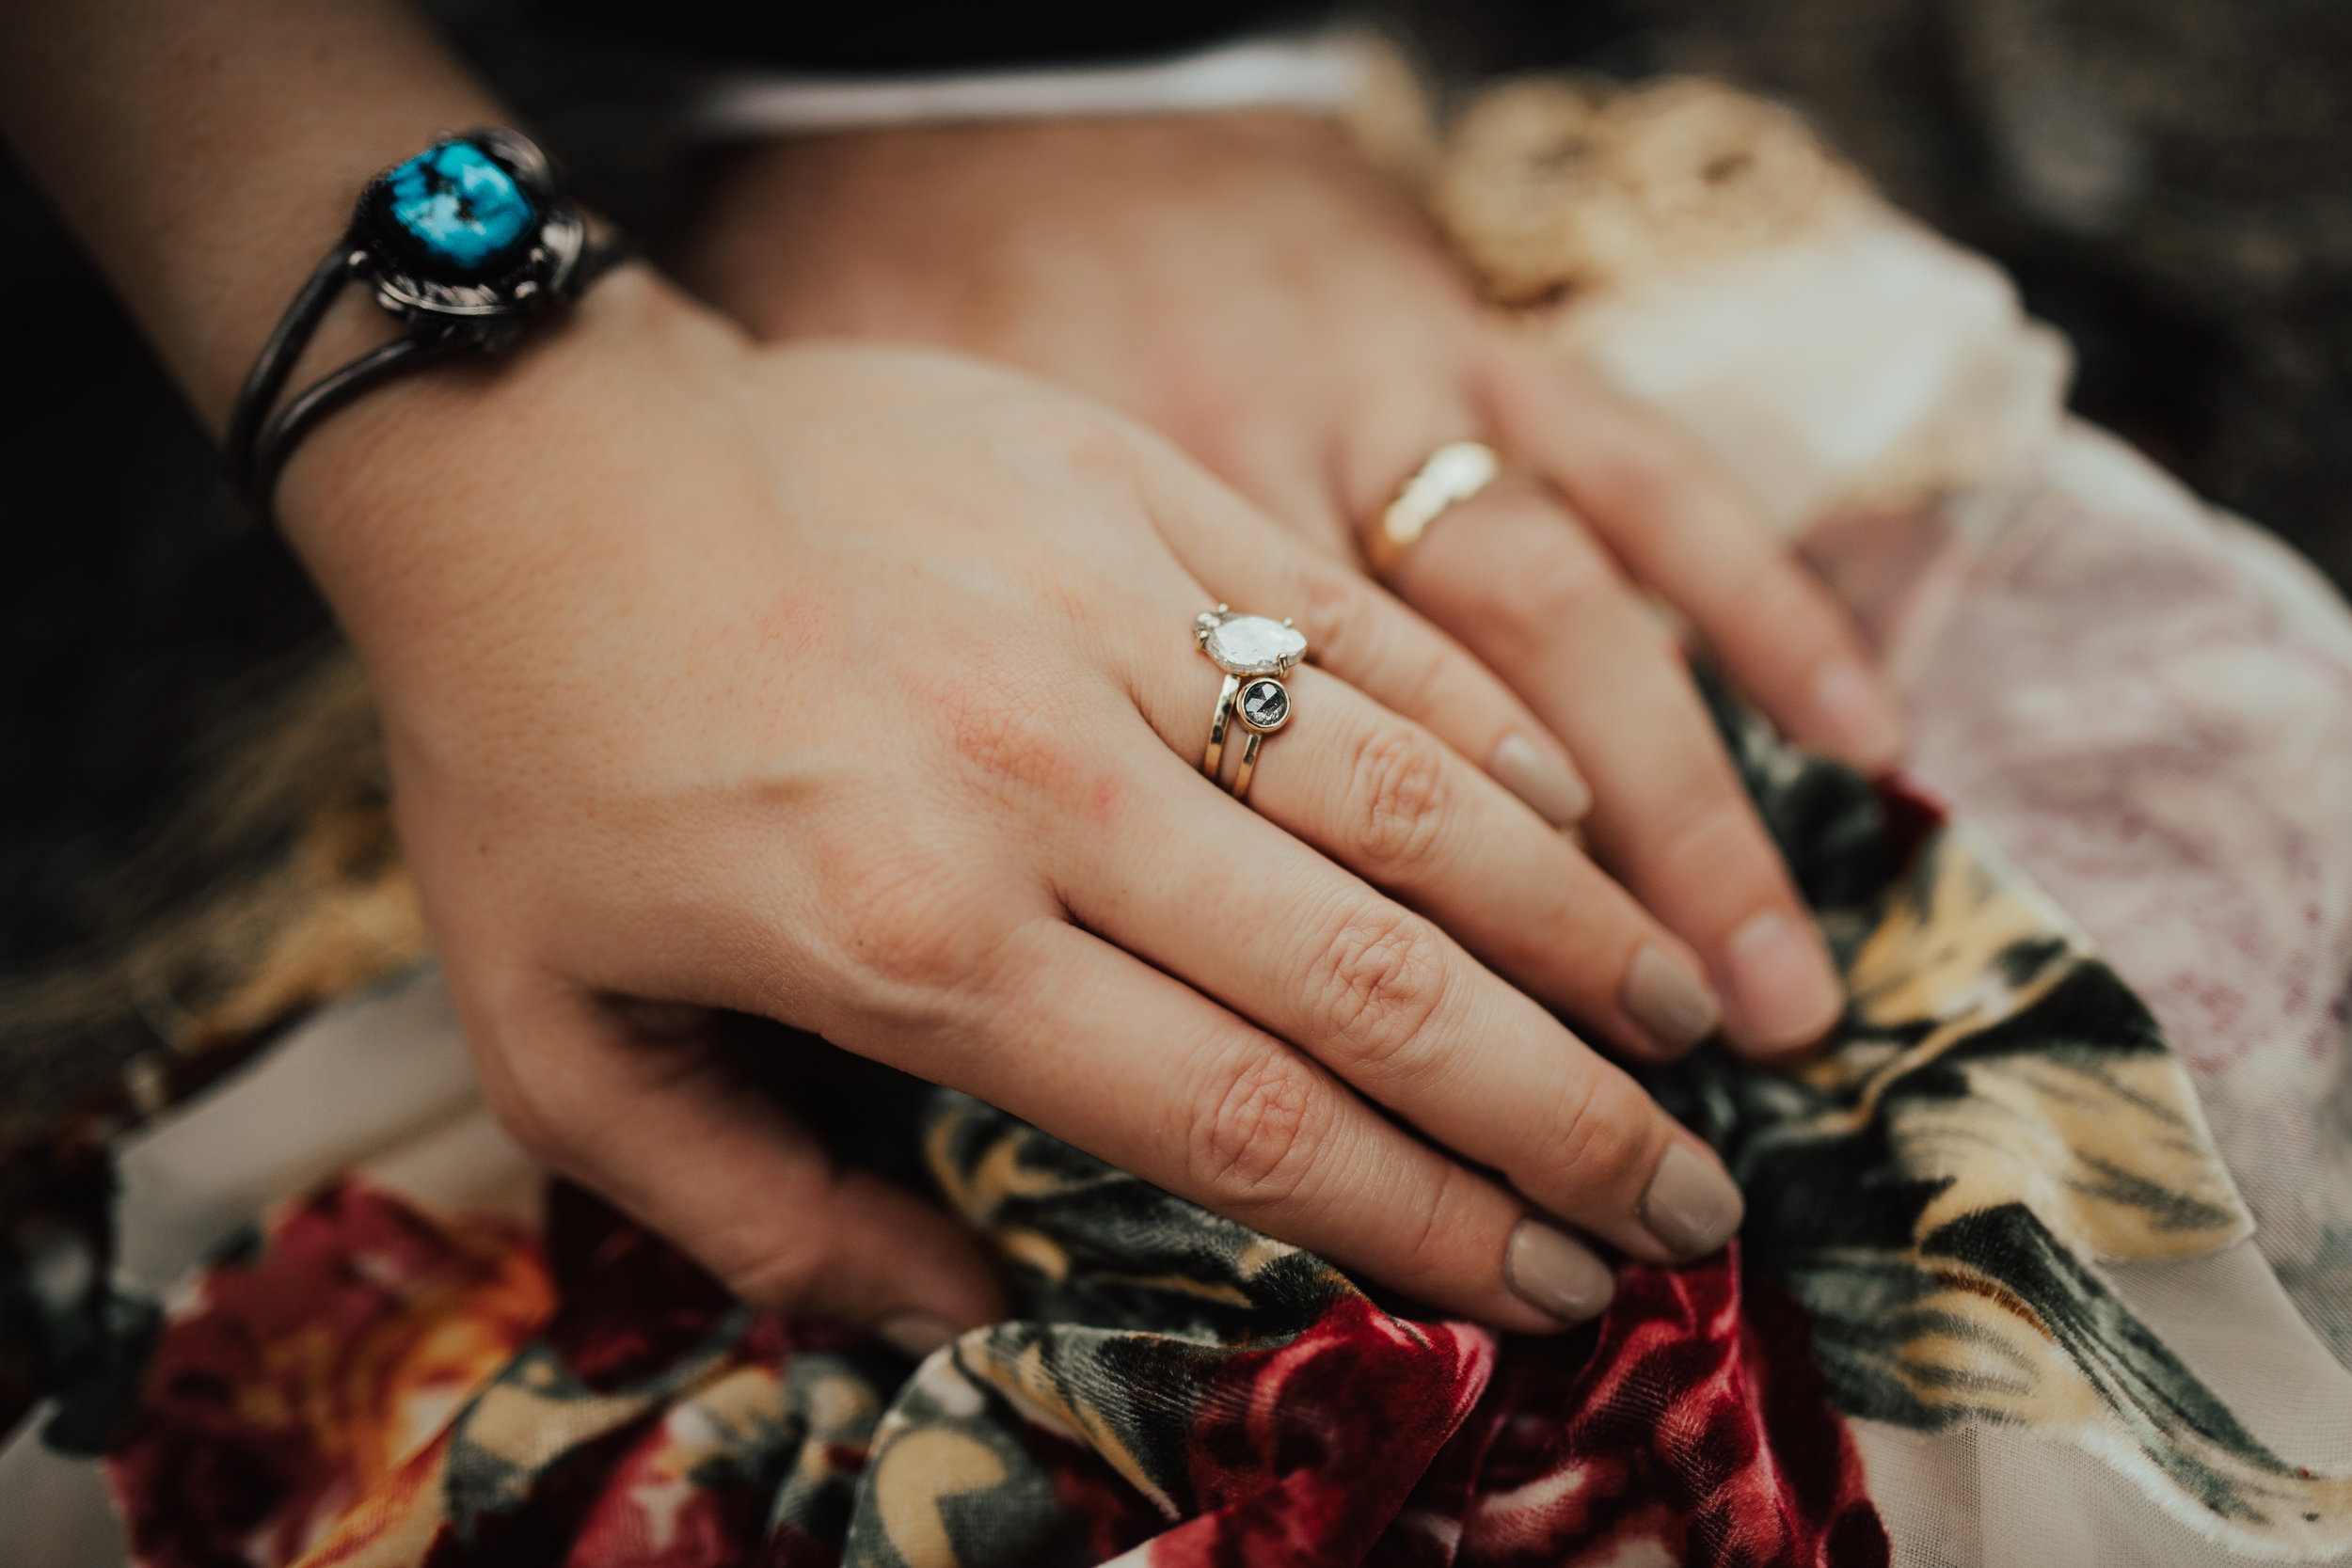 I am totally obsessed with Annie's rings. They are rough cut diamonds, so amazing and unique!